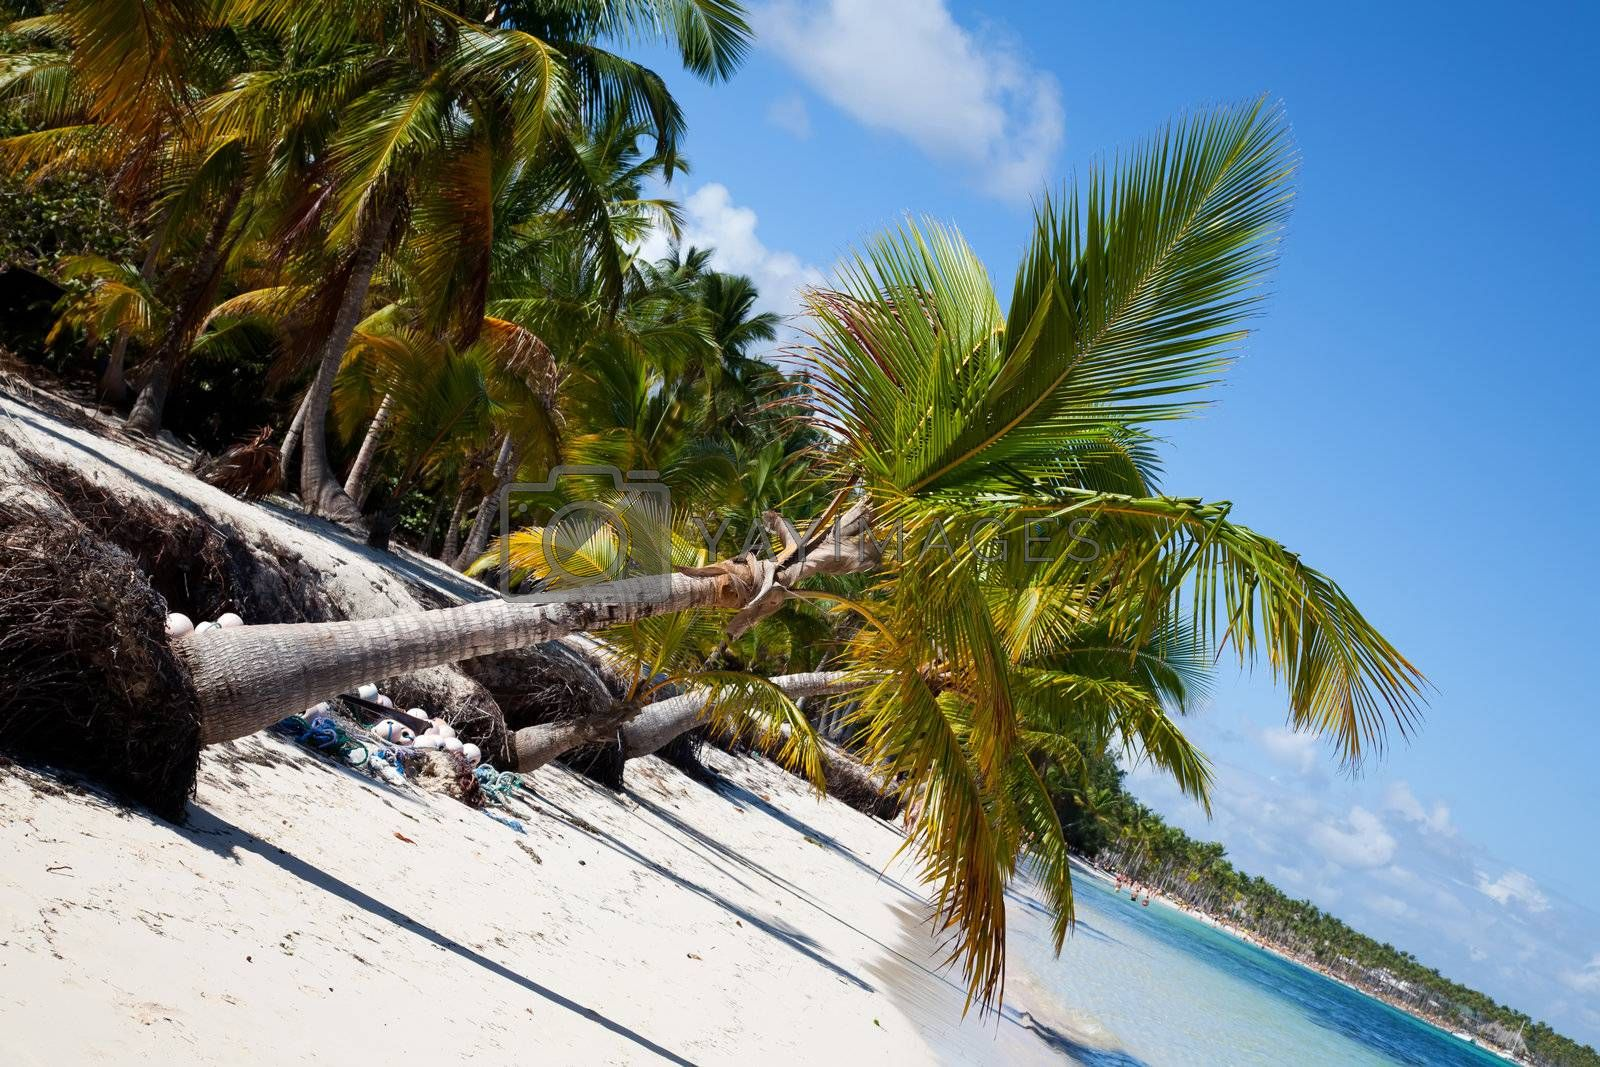 Punta cana beach and palms on the white sand